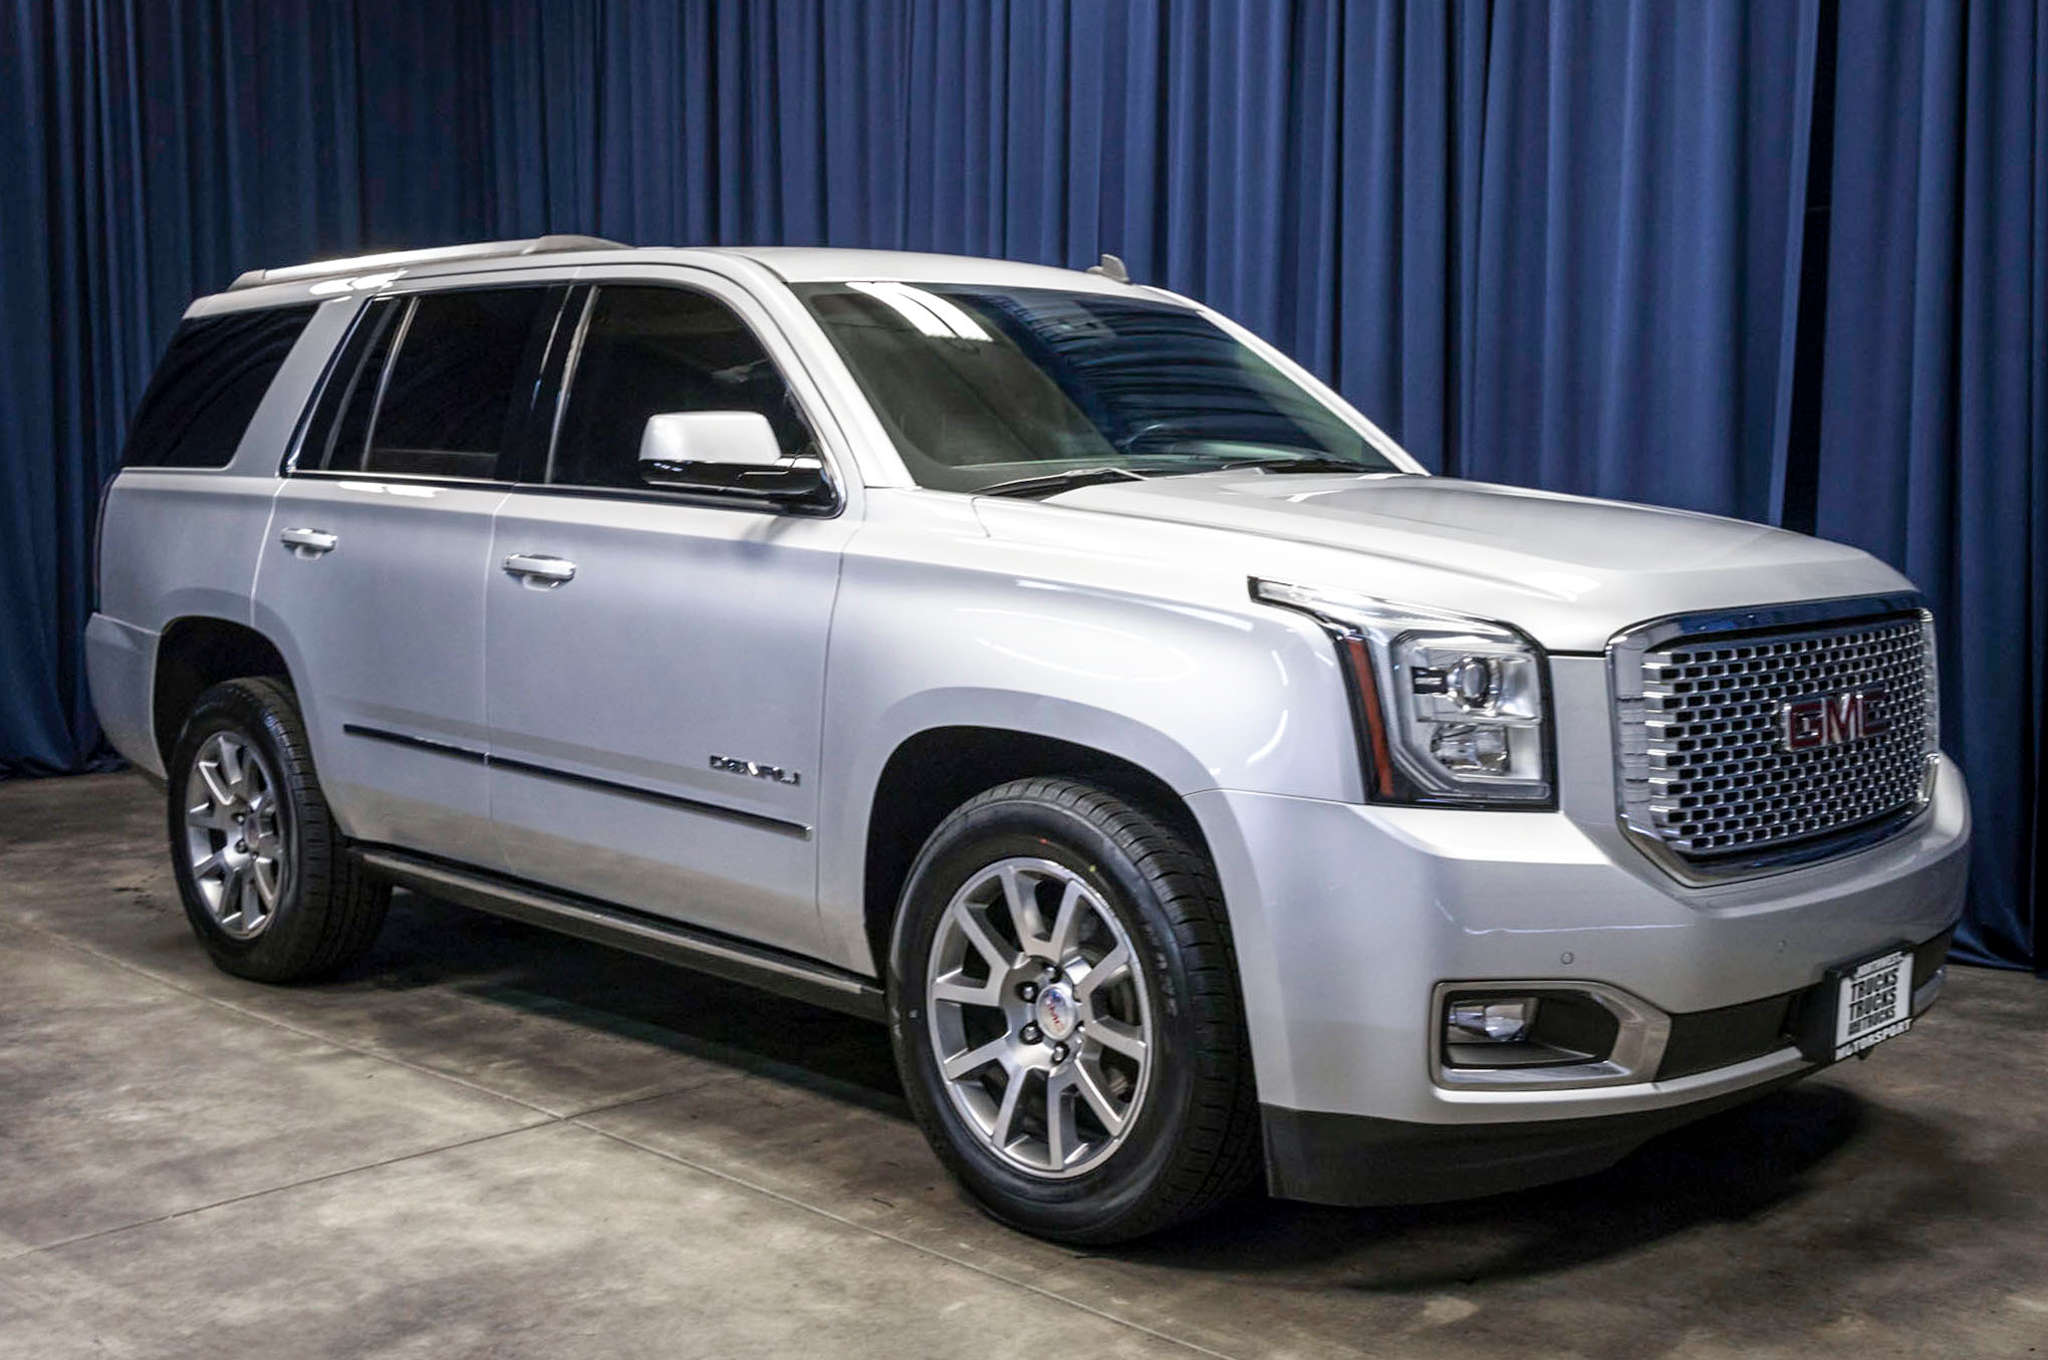 by gmc slt mom review passenger side and yukon owner a img